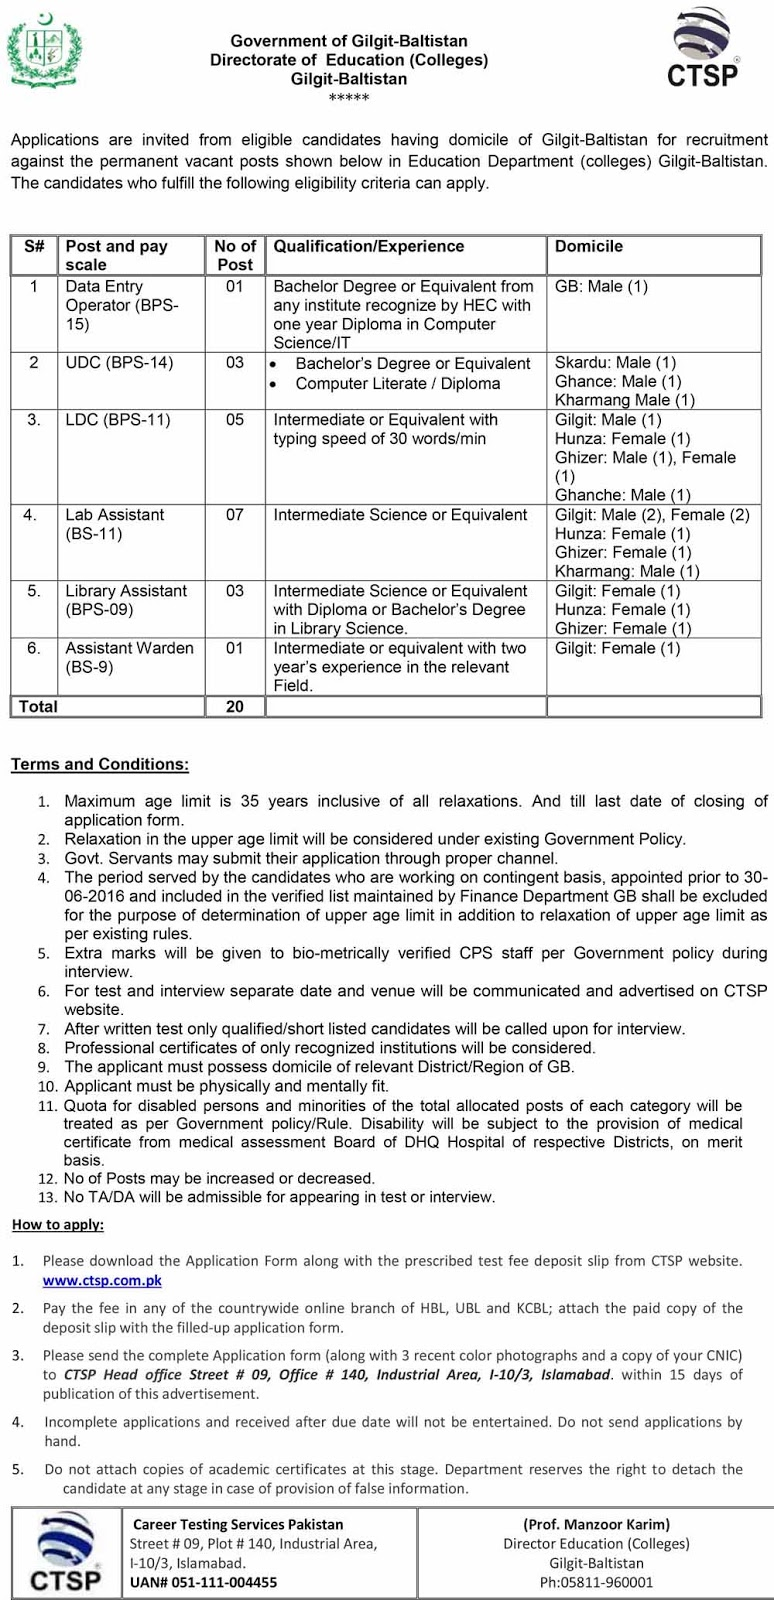 CTSP Jobs in Directorate Of Education Gilgit Baltistan 2020